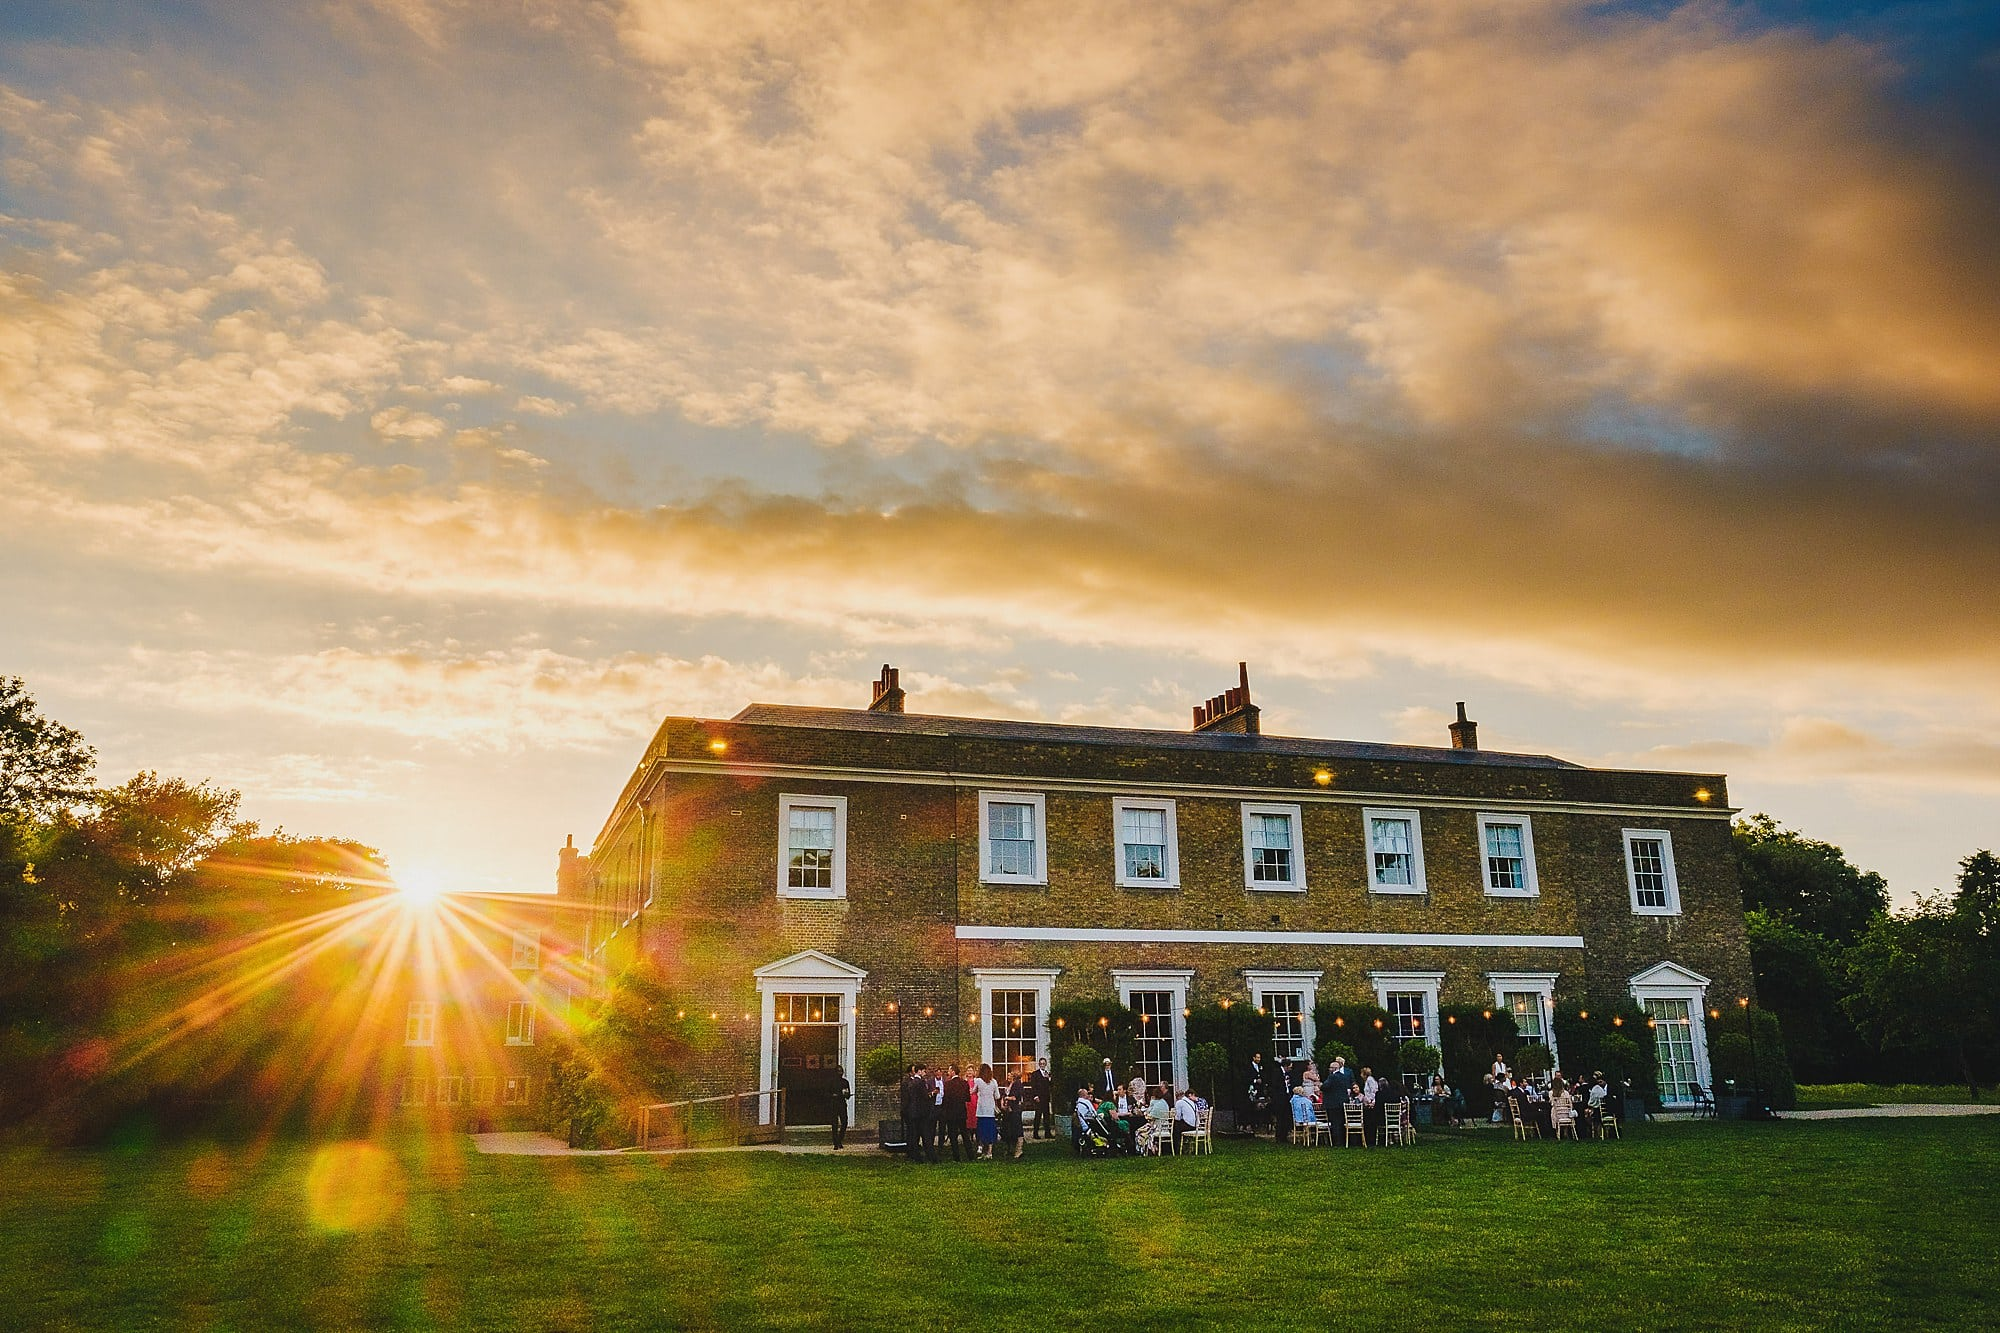 Fulham Palace during during sunset